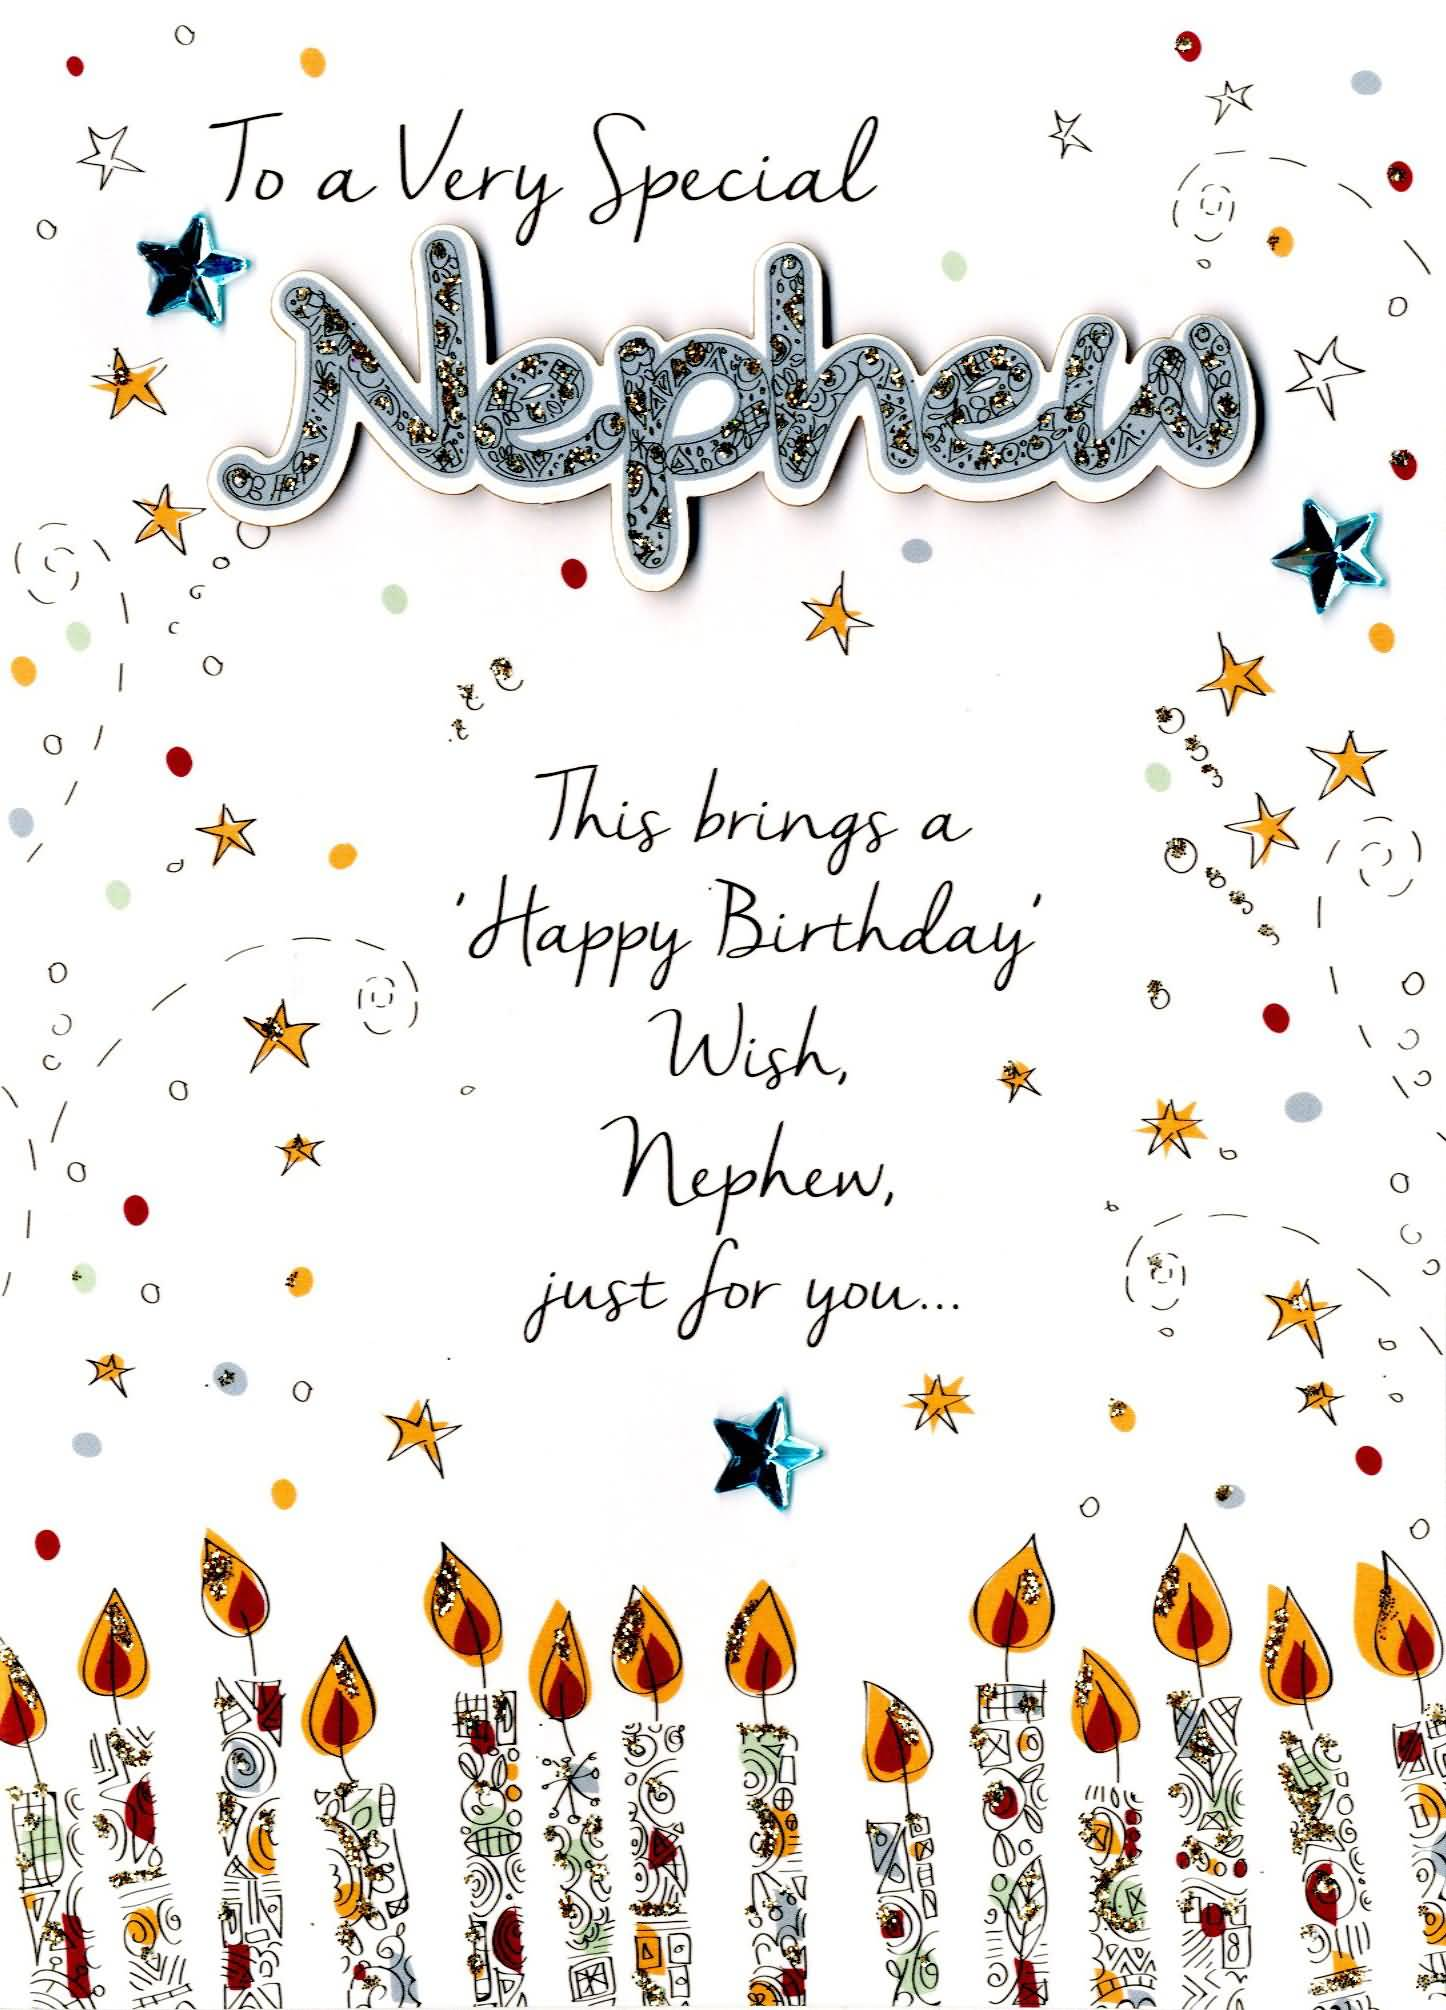 To a very special Nephew this brings a happy birthday wishes and greeting cards for you